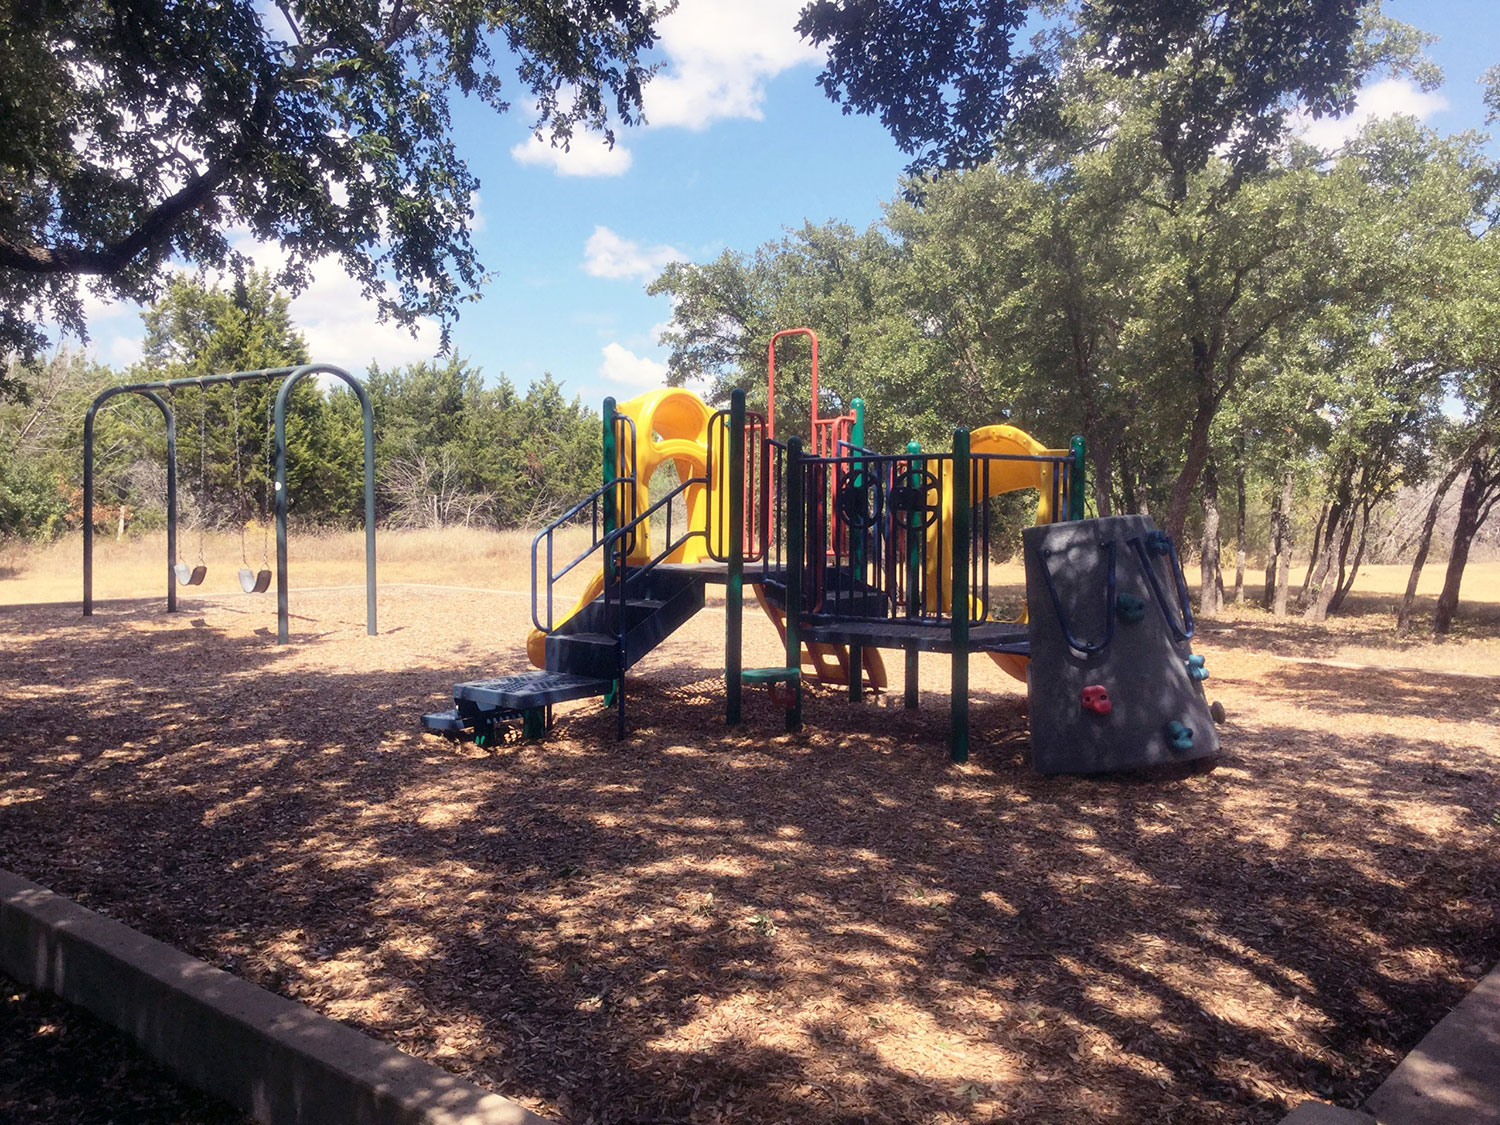 Playscape at Windridge Park in Georgetown, TX